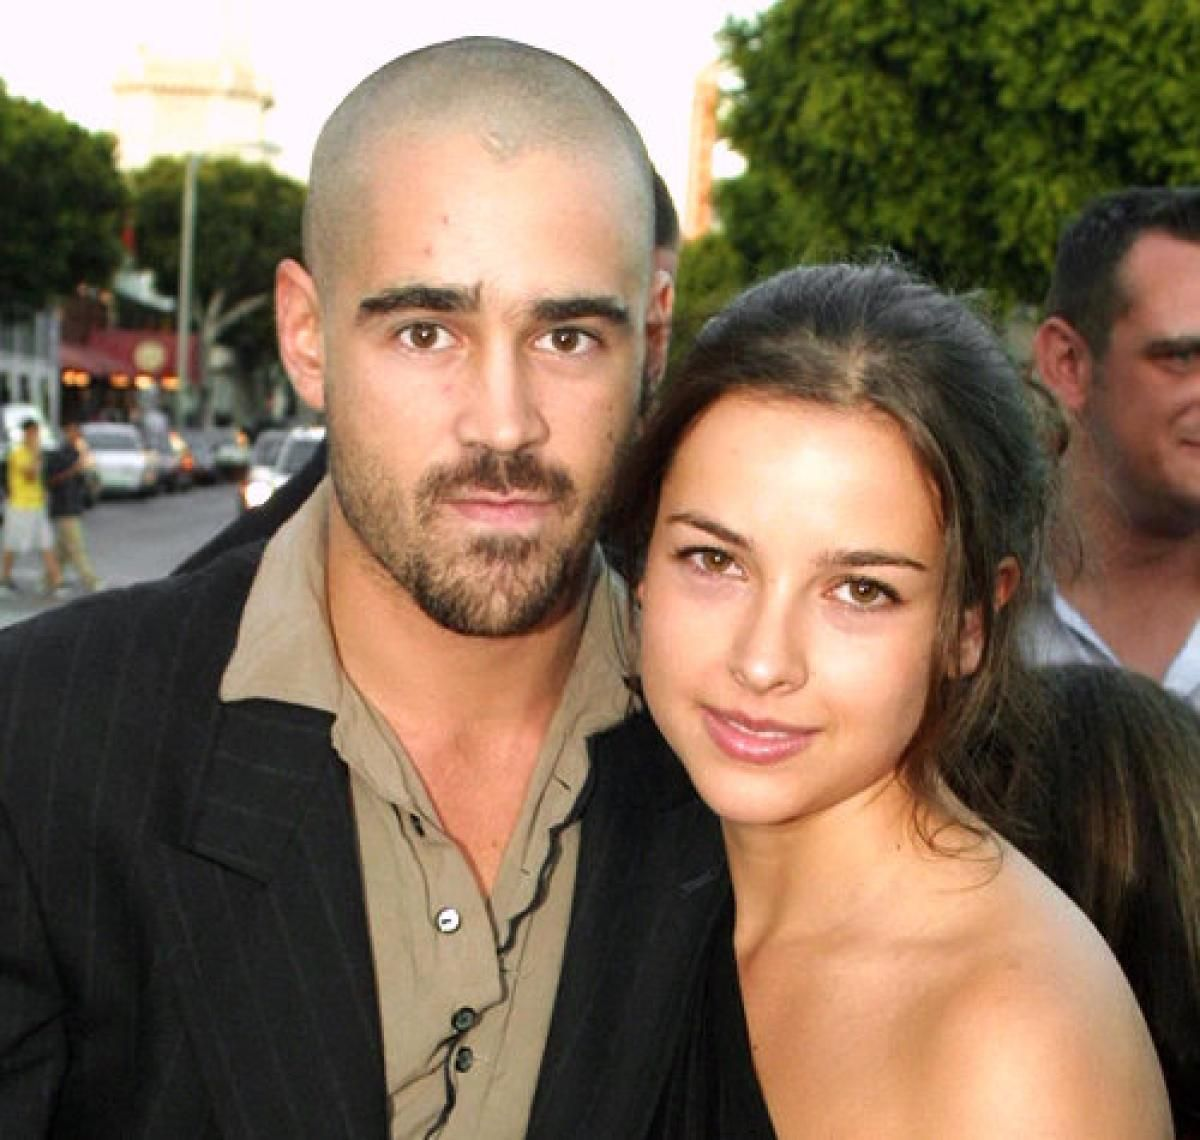 Shortest Celebrity Marriages and Relationships - The Spruce